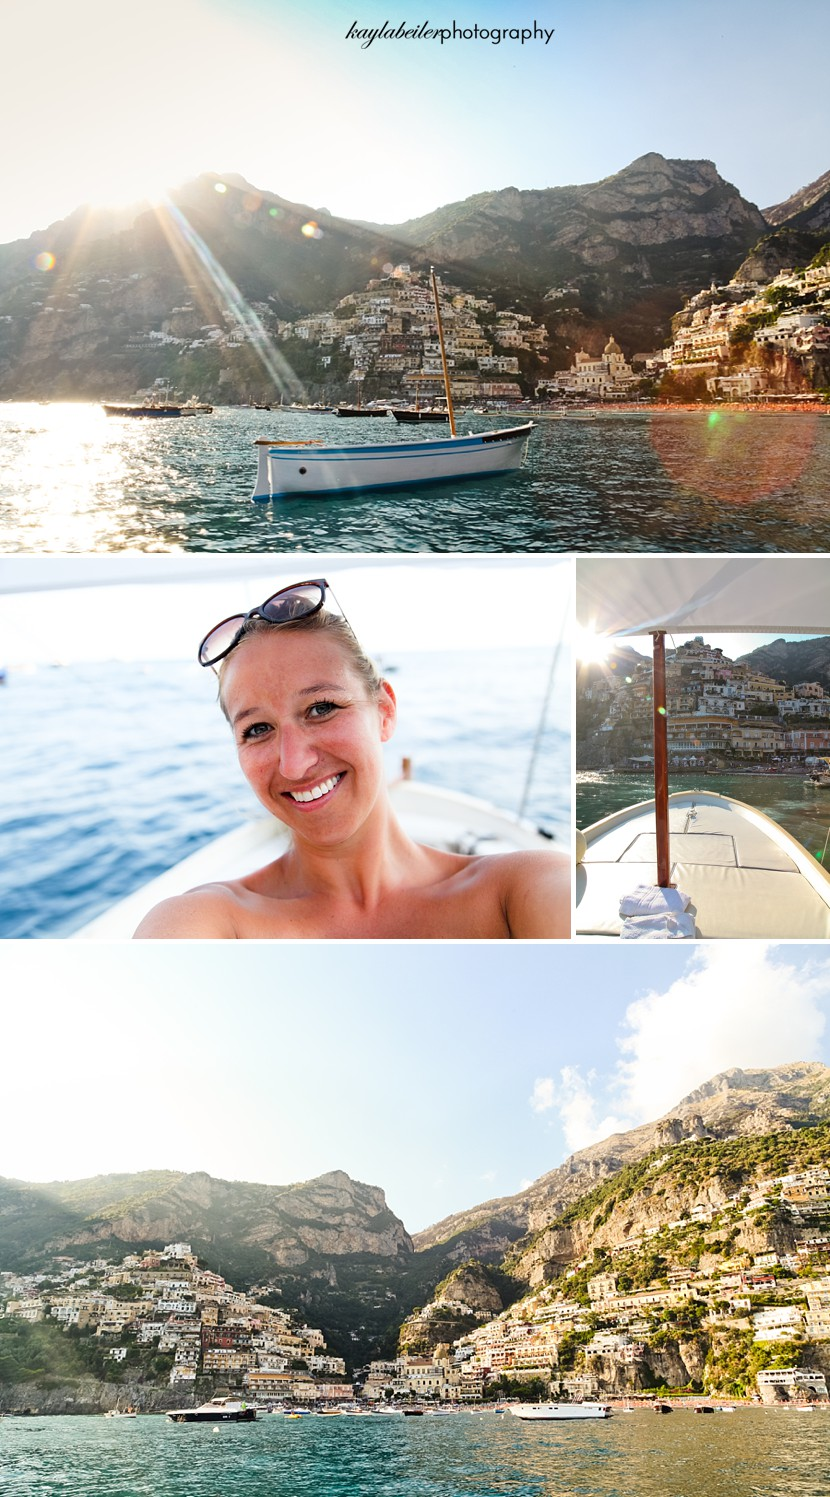 boating in positano photo